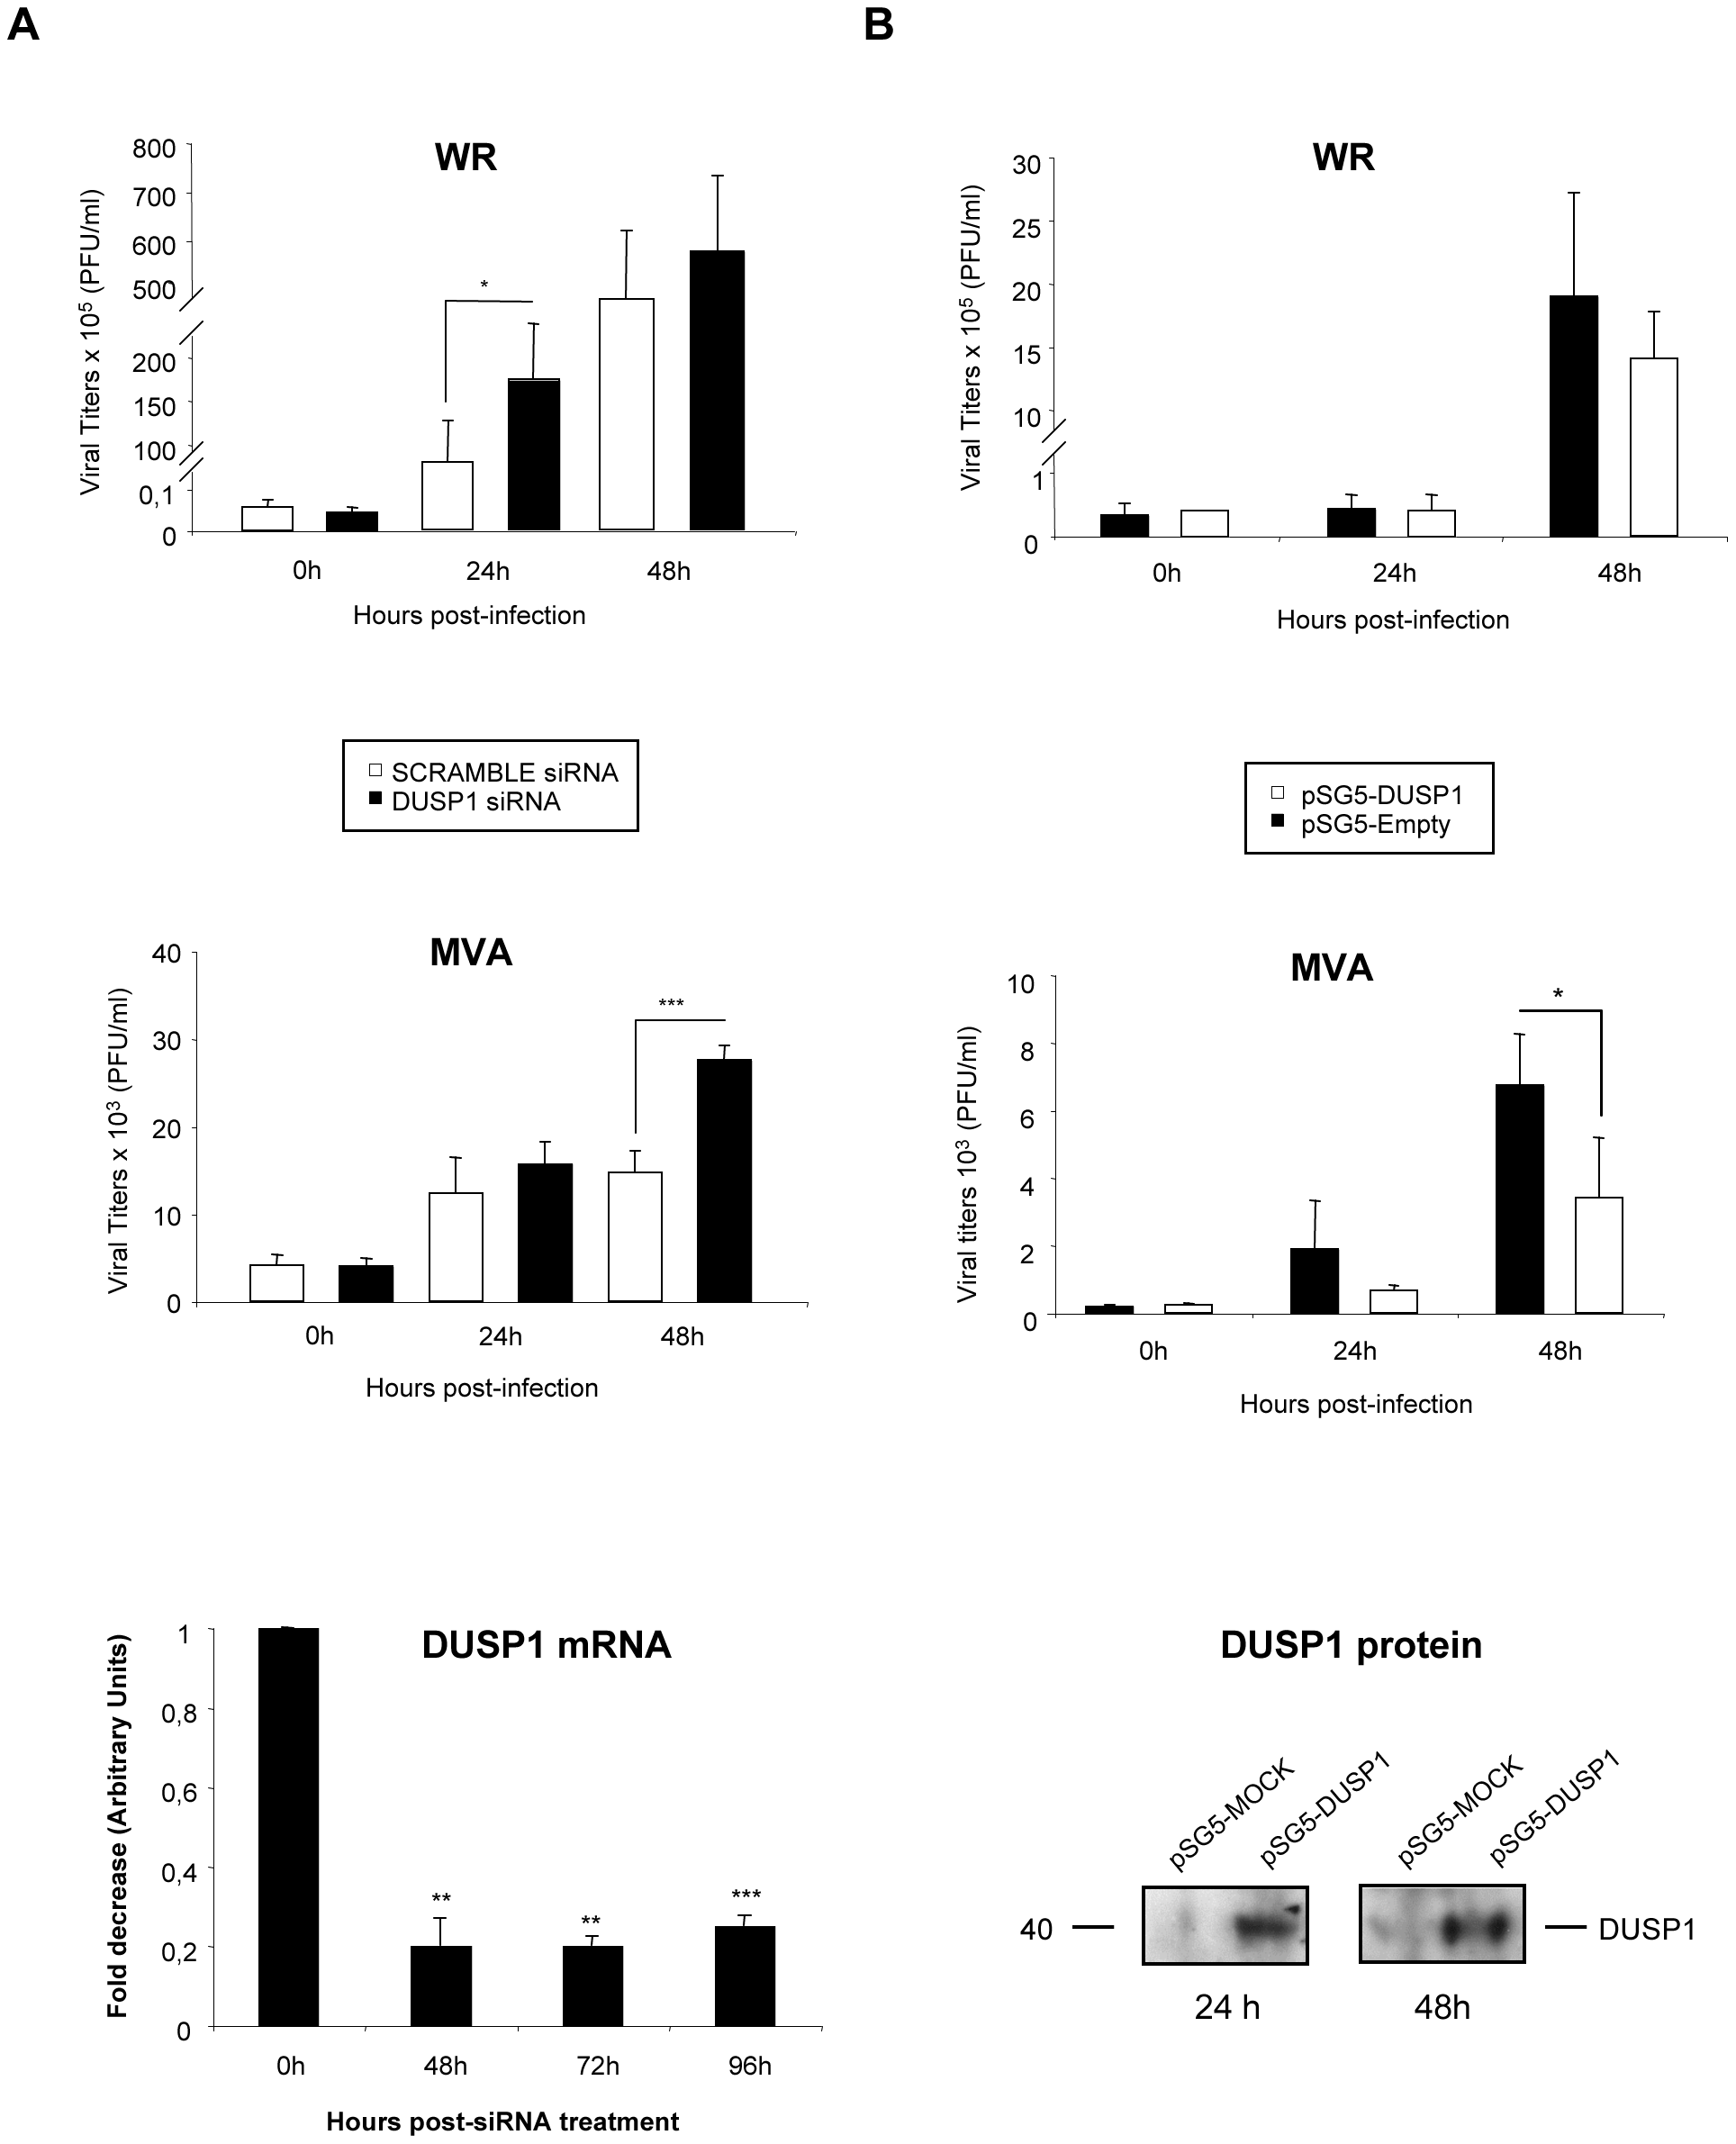 The increased VACV replication in cultured cells is DUSP1 specific.